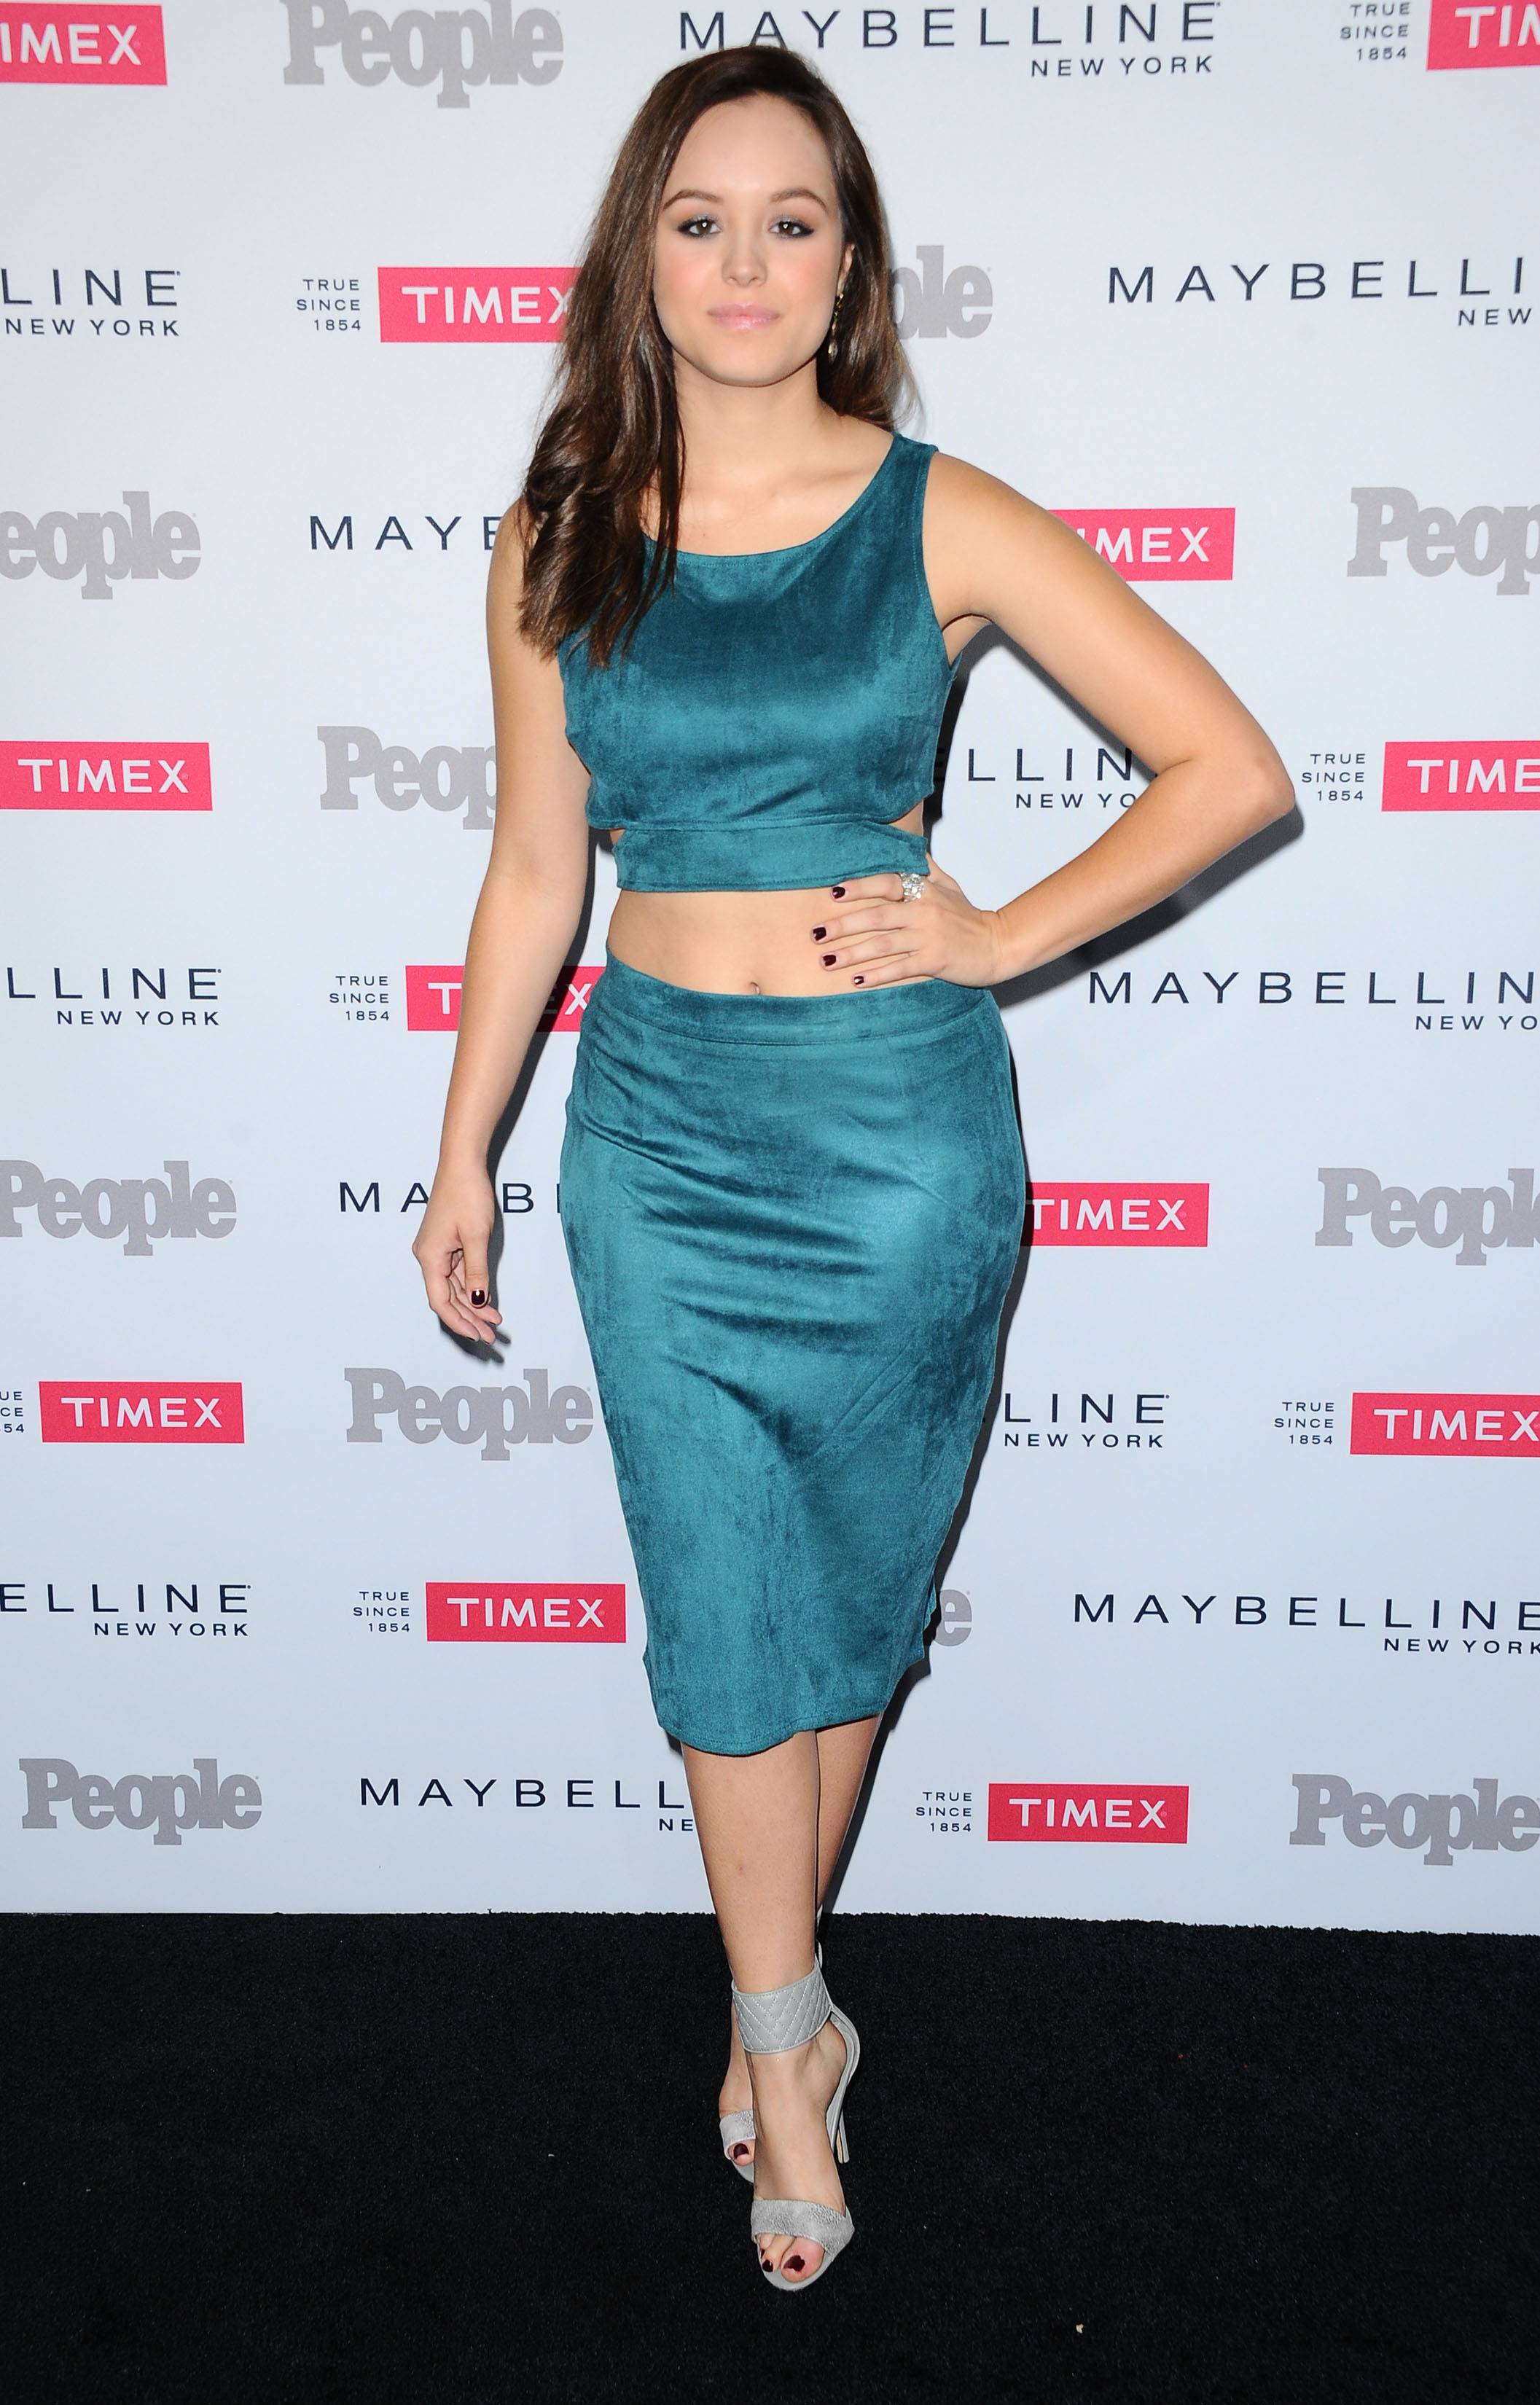 hayley orrantia agehayley orrantia listal, hayley orrantia silence you, hayley orrantia instagram, hayley orrantia silence you lyrics, hayley orrantia x factor, hayley orrantia x factor audition, hayley orrantia hot, hayley orrantia feet, hayley orrantia net worth, hayley orrantia singing, hayley orrantia age, hayley orrantia boyfriend, hayley orrantia measurements, hayley orrantia pregnant, hayley orrantia twitter, hayley orrantia snapchat, hayley orrantia dating, hayley orrantia pics